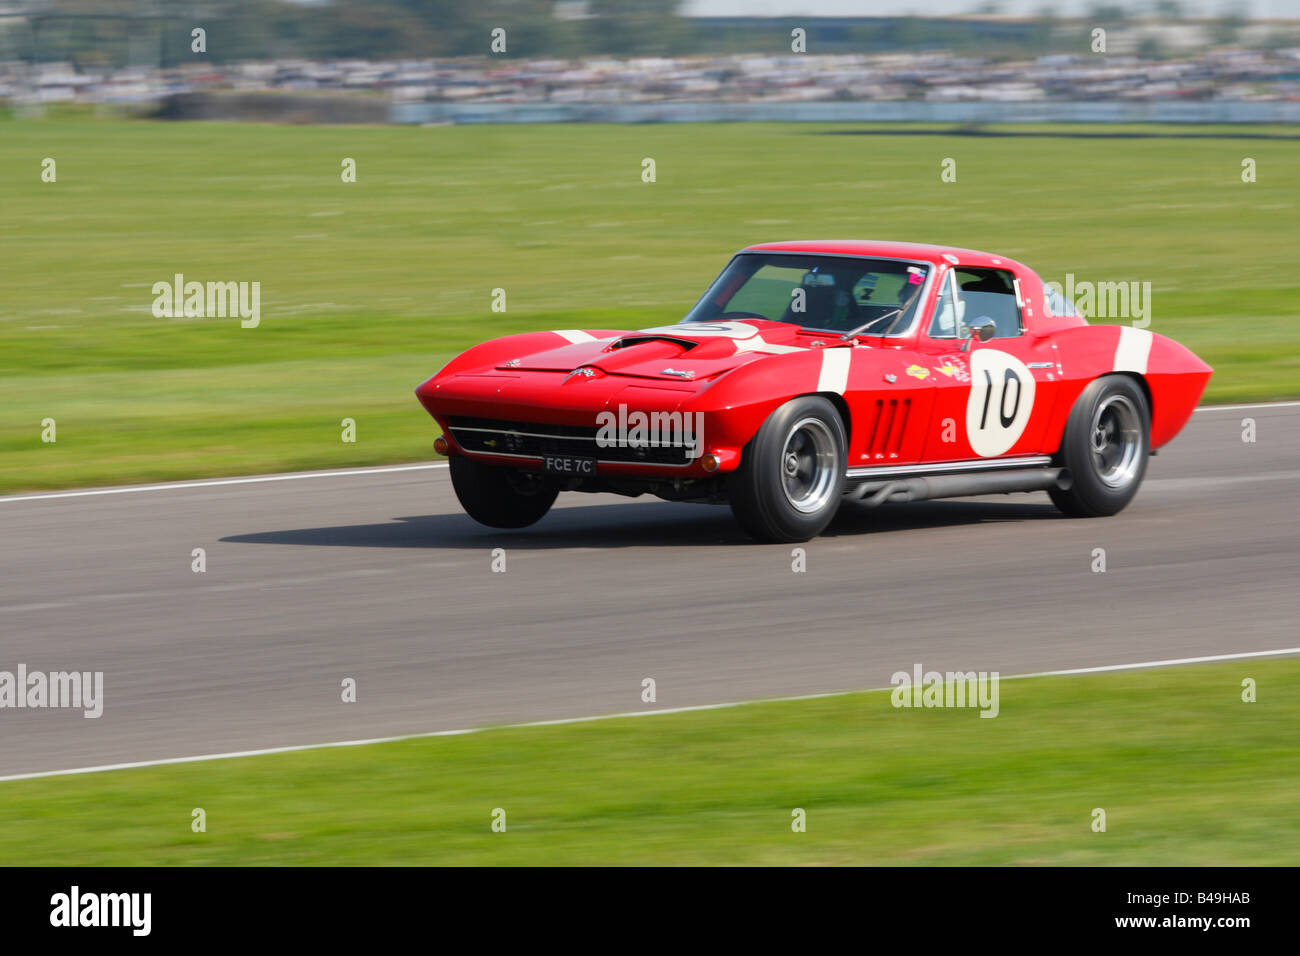 Chevrolet Corvette Stingray am Goodwood Revival meeting Stockbild